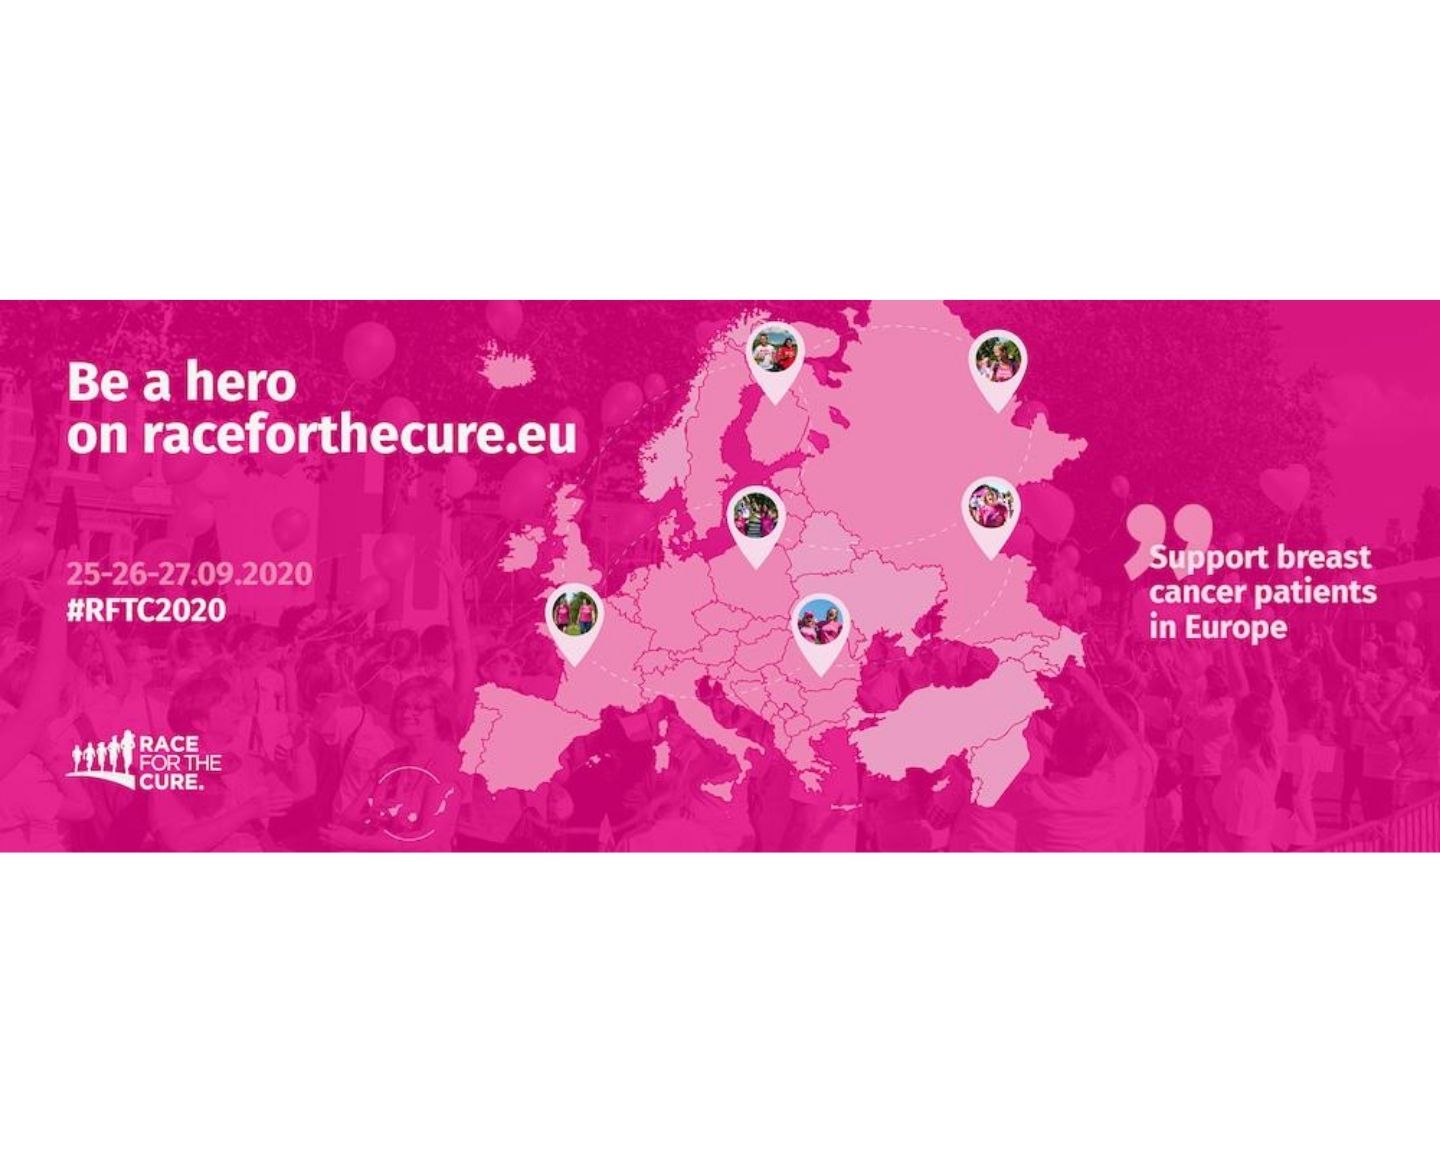 Help make Race for the Cure® 2020 the biggest sporting event ever